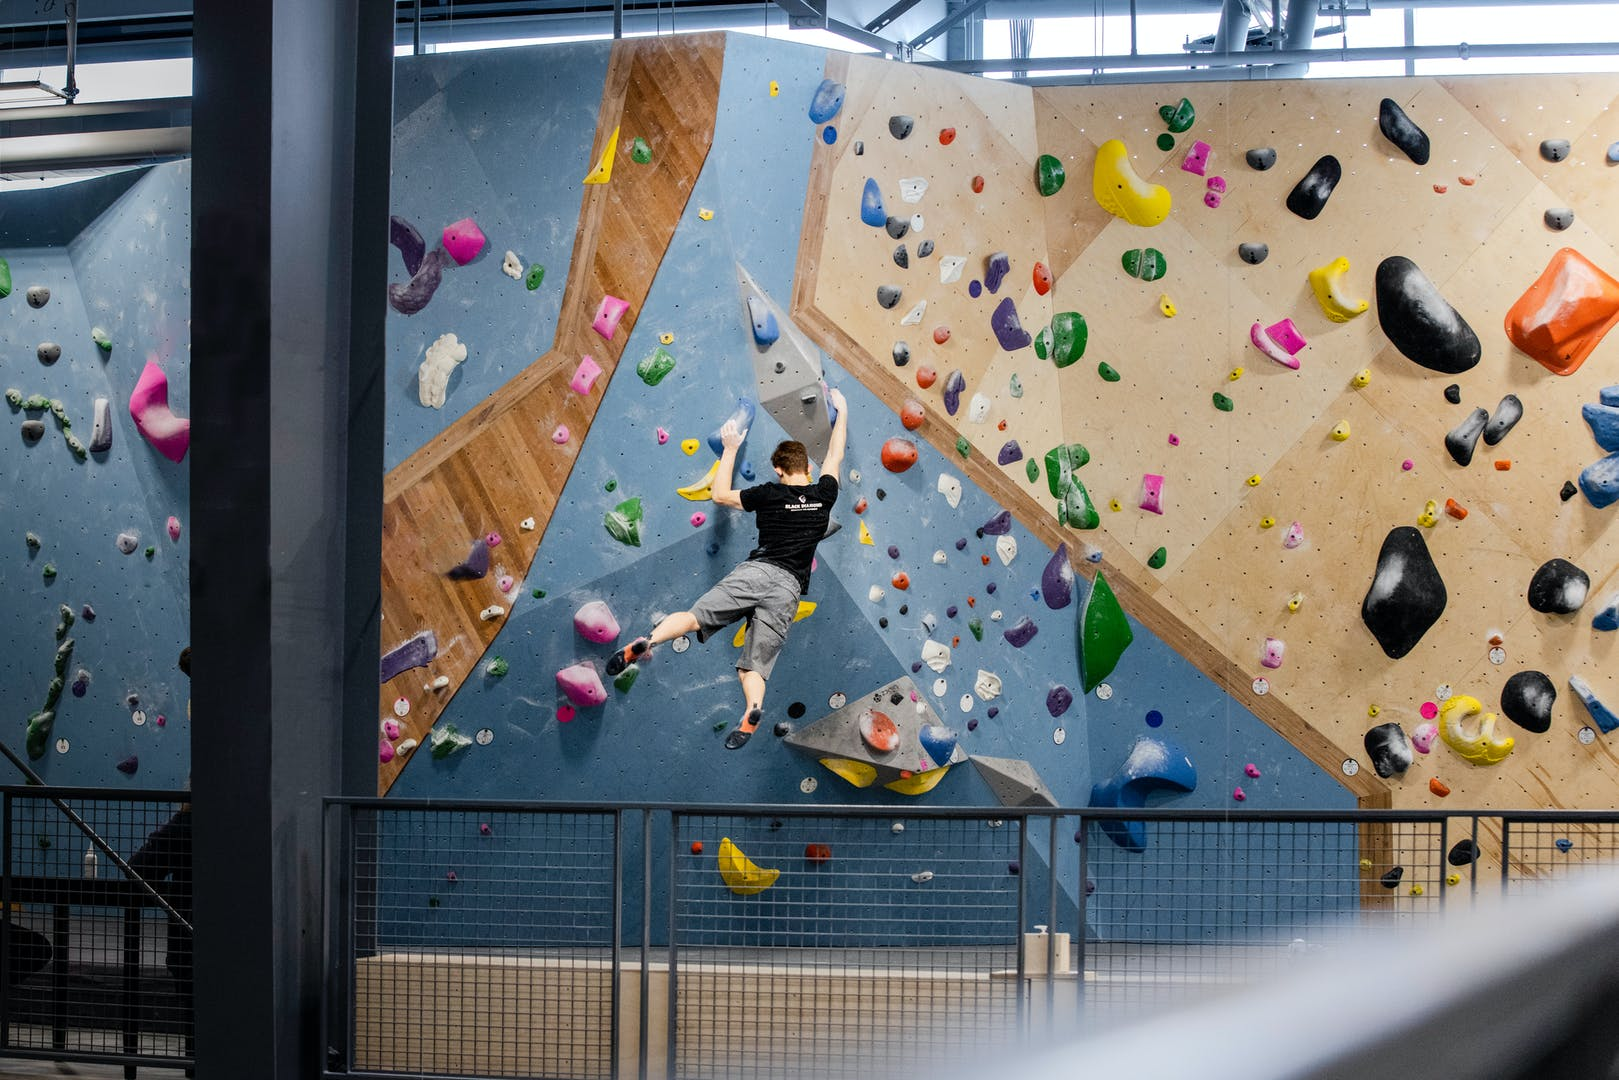 BD Athlete Colin Duffy climbing indoors